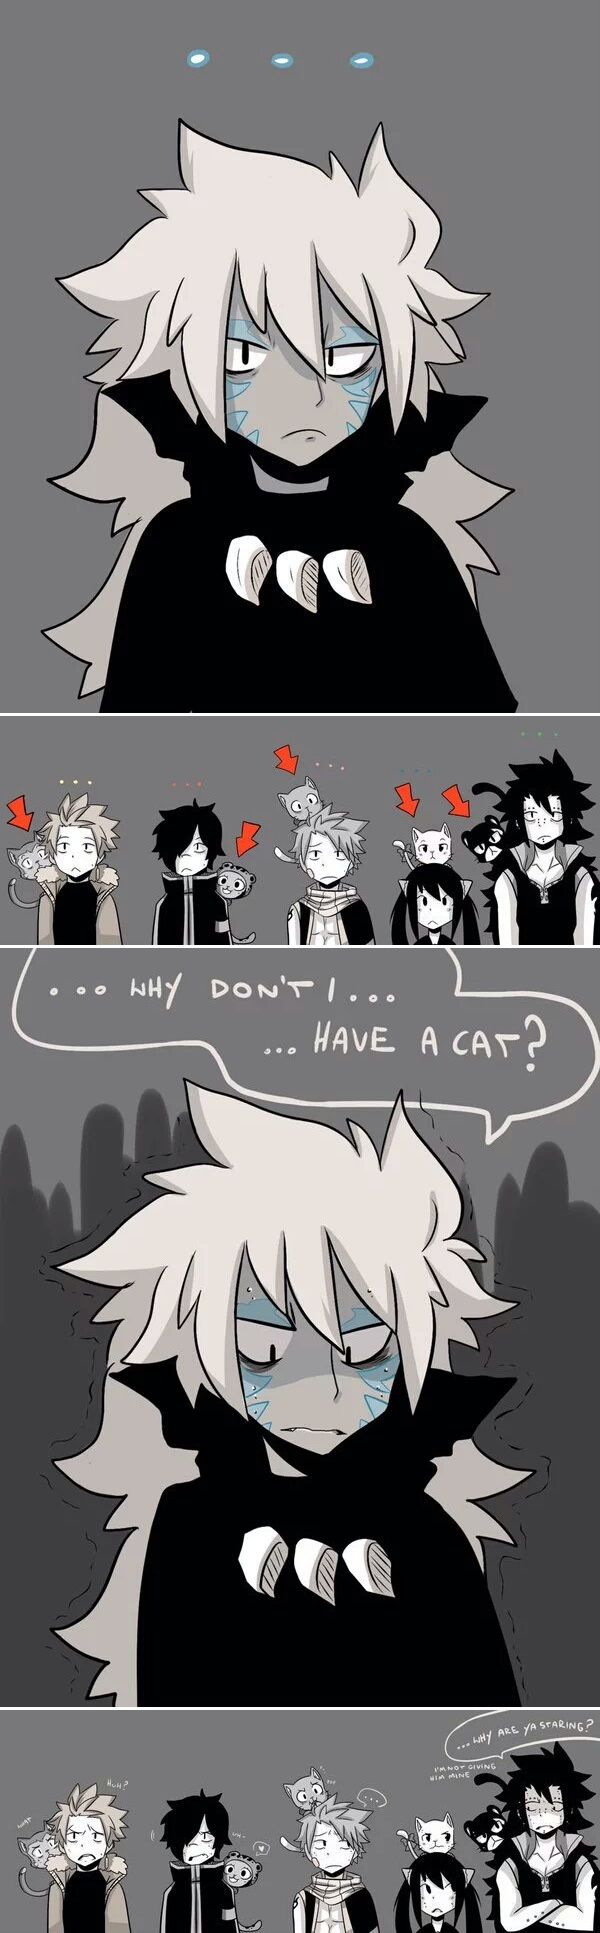 Dragonslayers and their cats